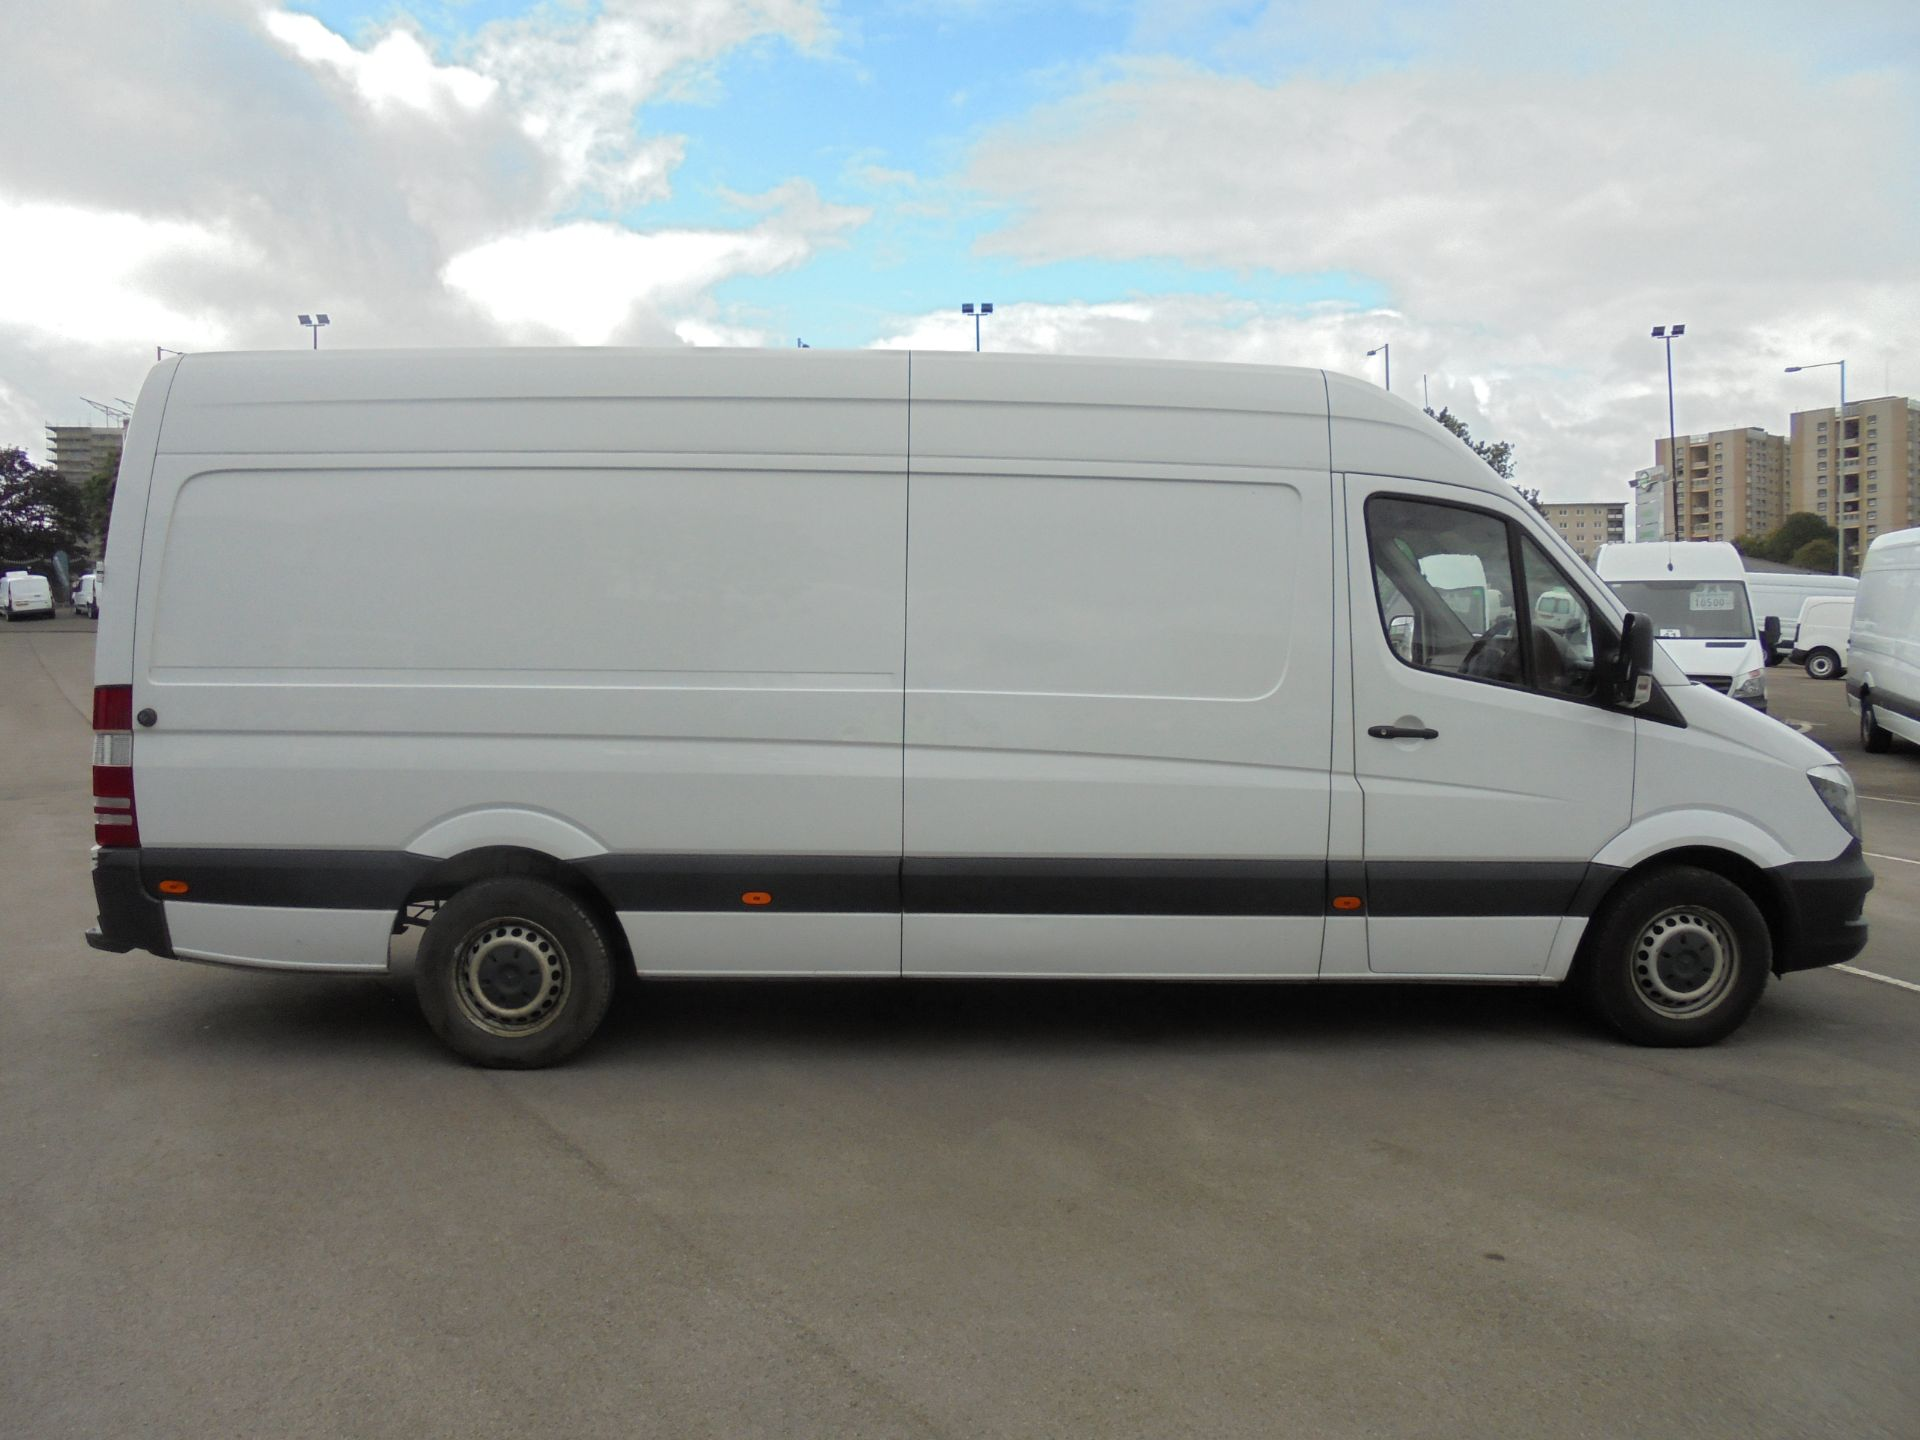 2017 Mercedes-Benz Sprinter 314 CDI 3.5T High Roof Van (KR17TJX) Thumbnail 8